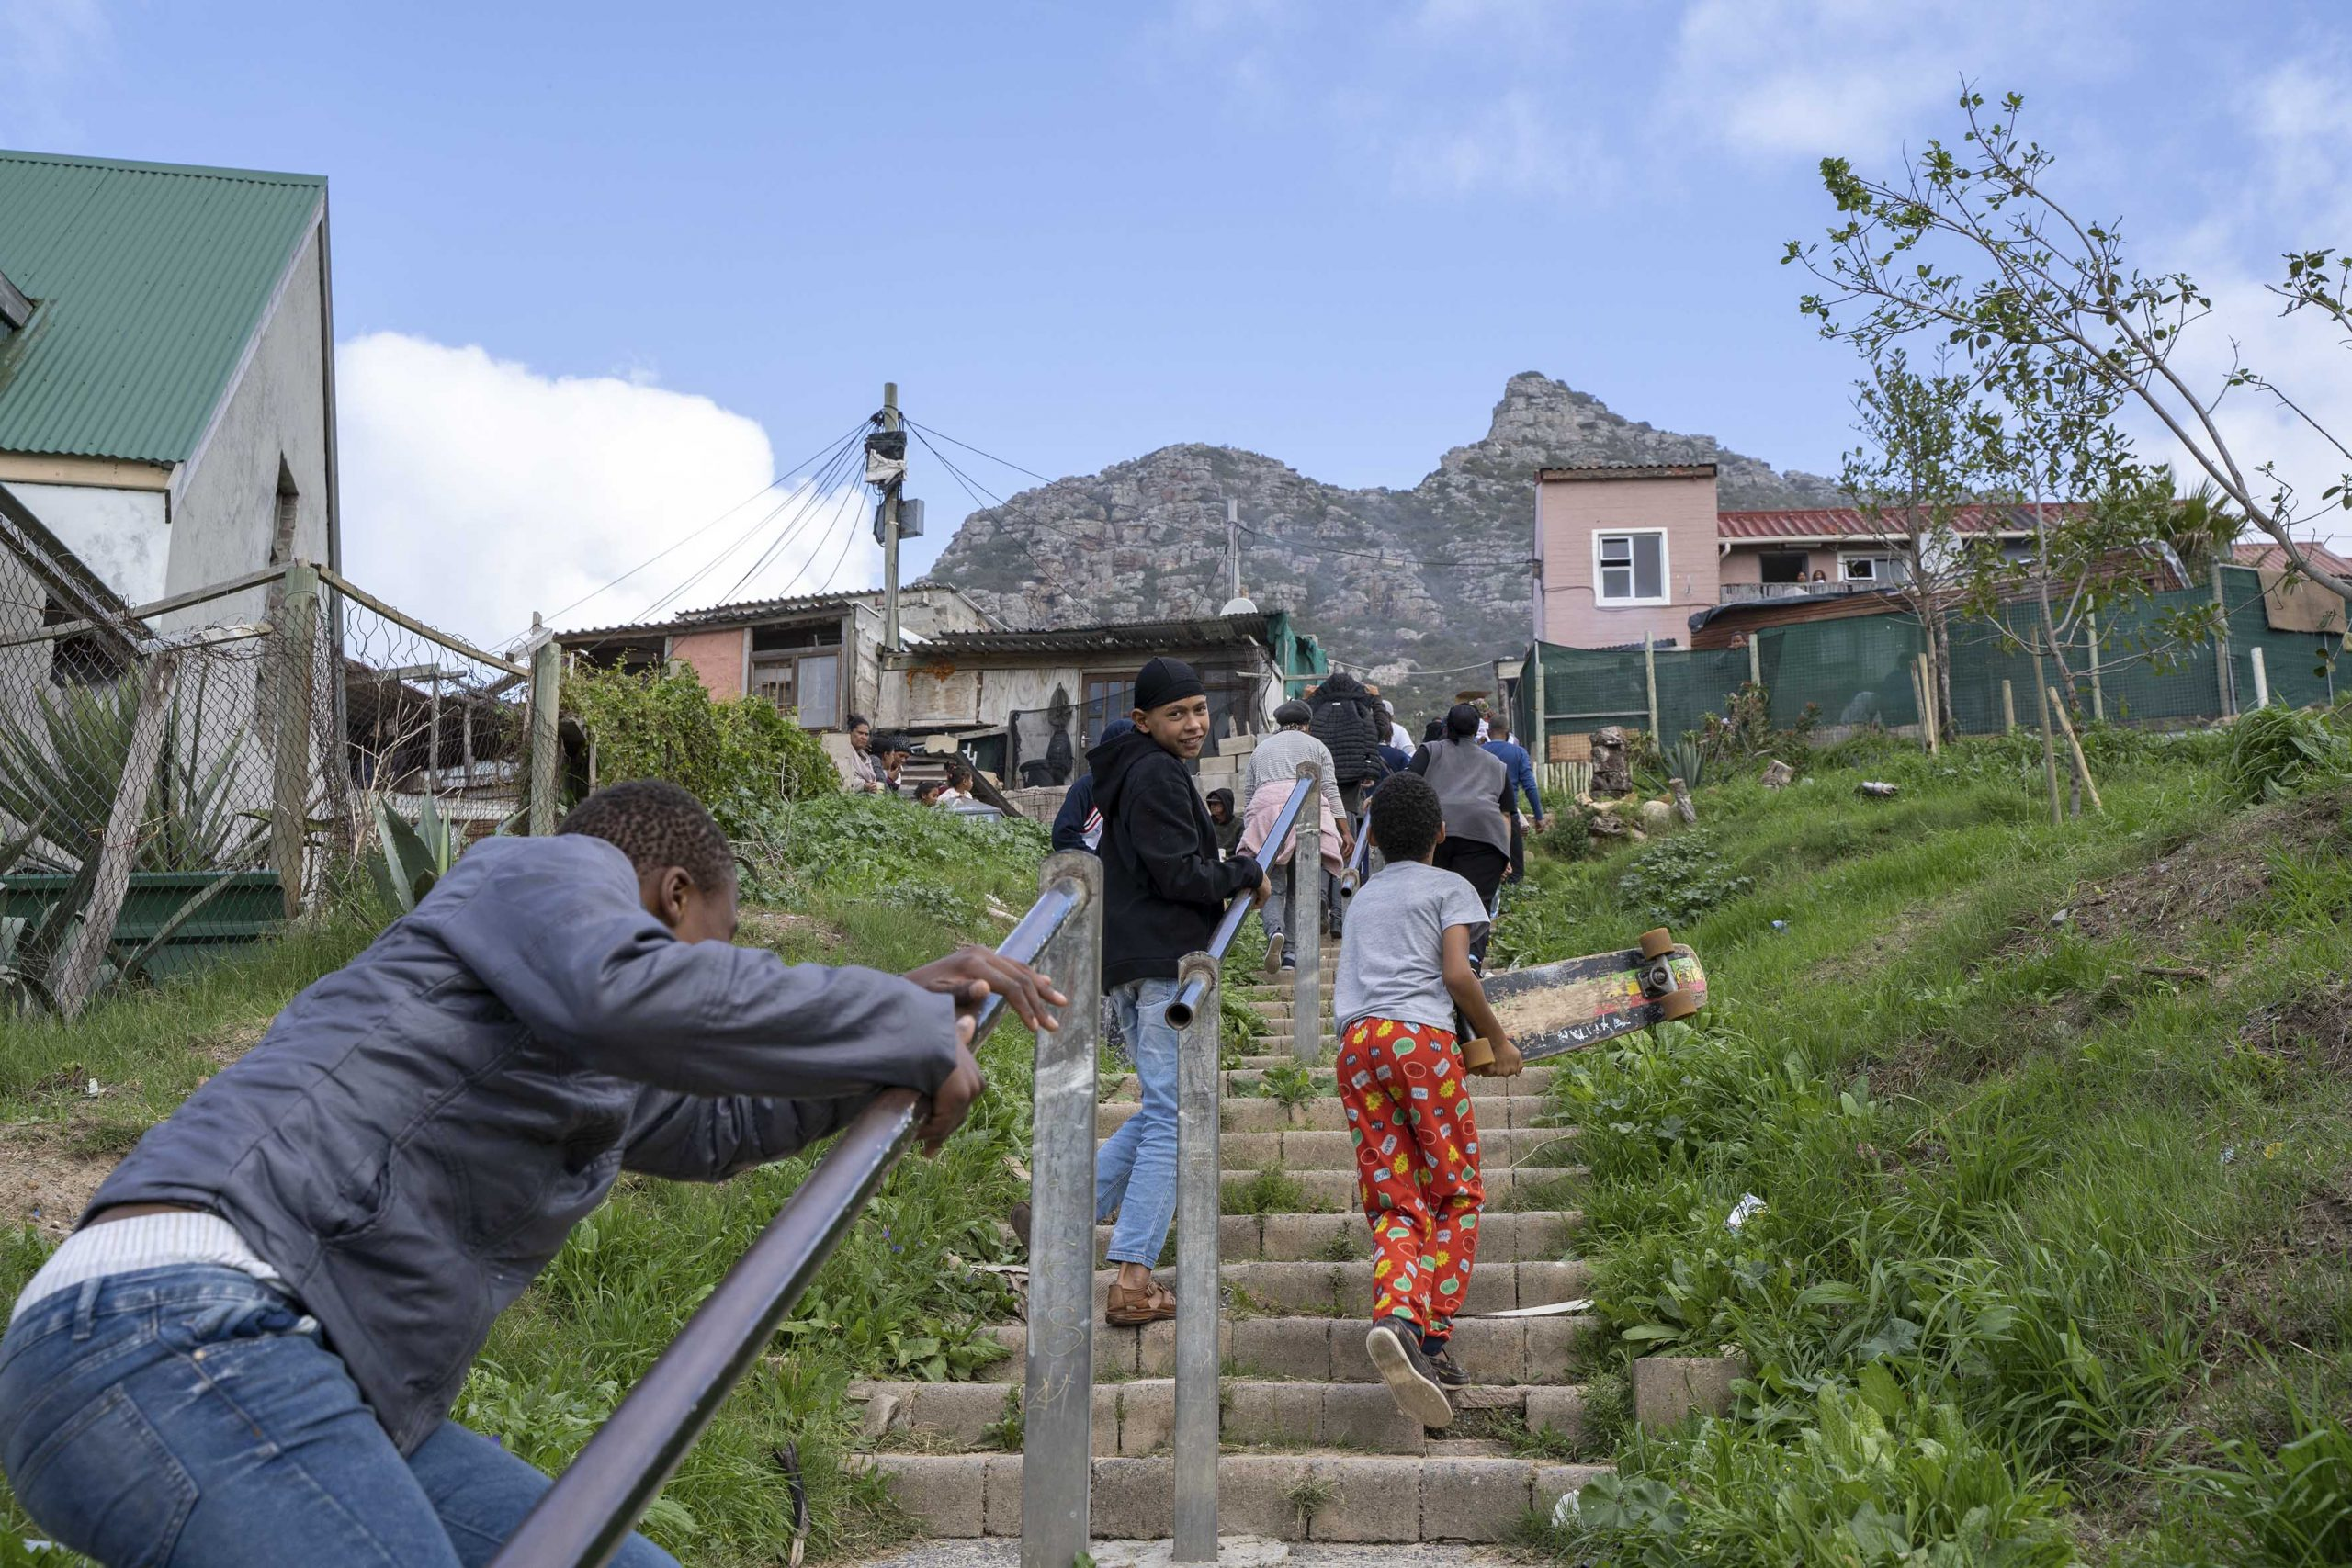 28 June 2020: Children walk up the steep stairs from Karbonkel Road to Salamander Park in Hangberg.